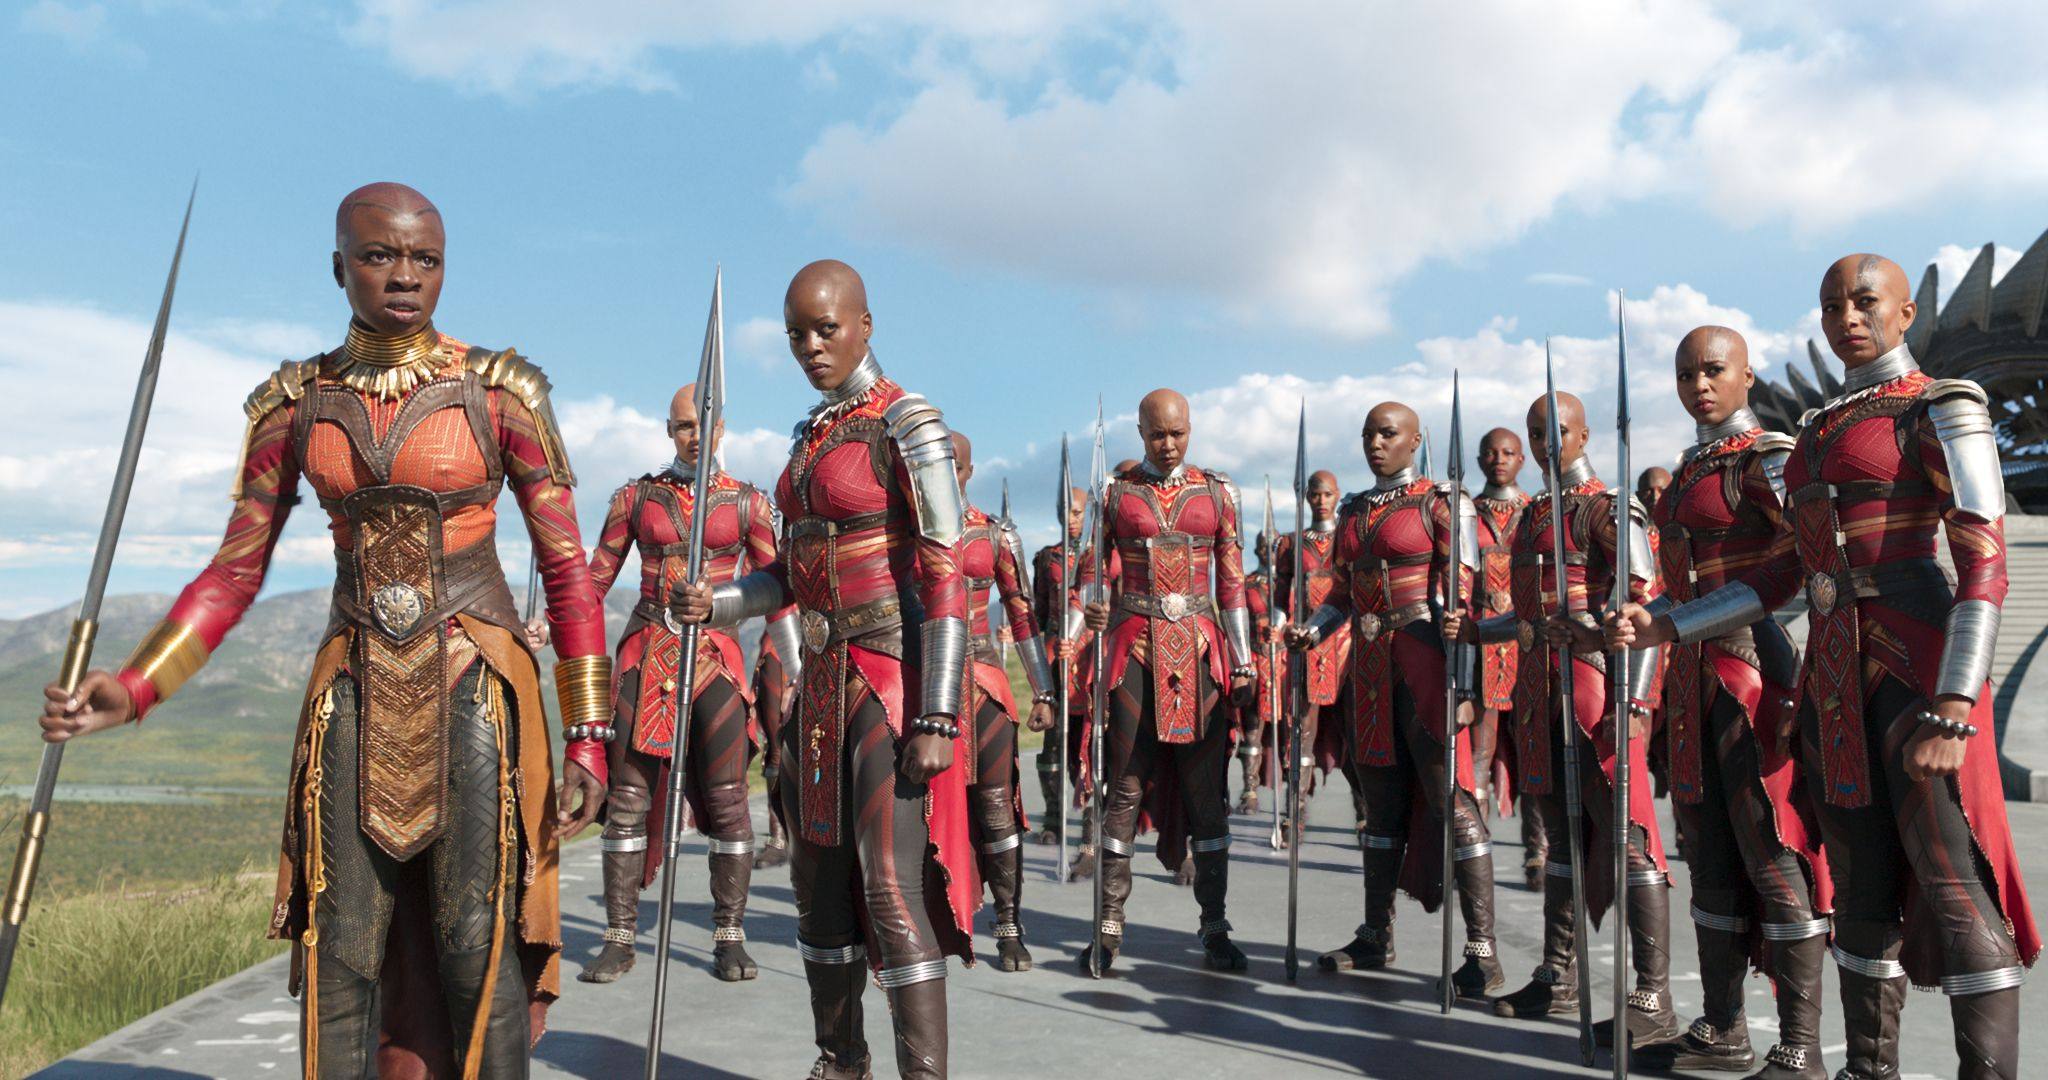 'Black Panther' Passes $700 Million Globally, On Pace To Top 'The Avengers'